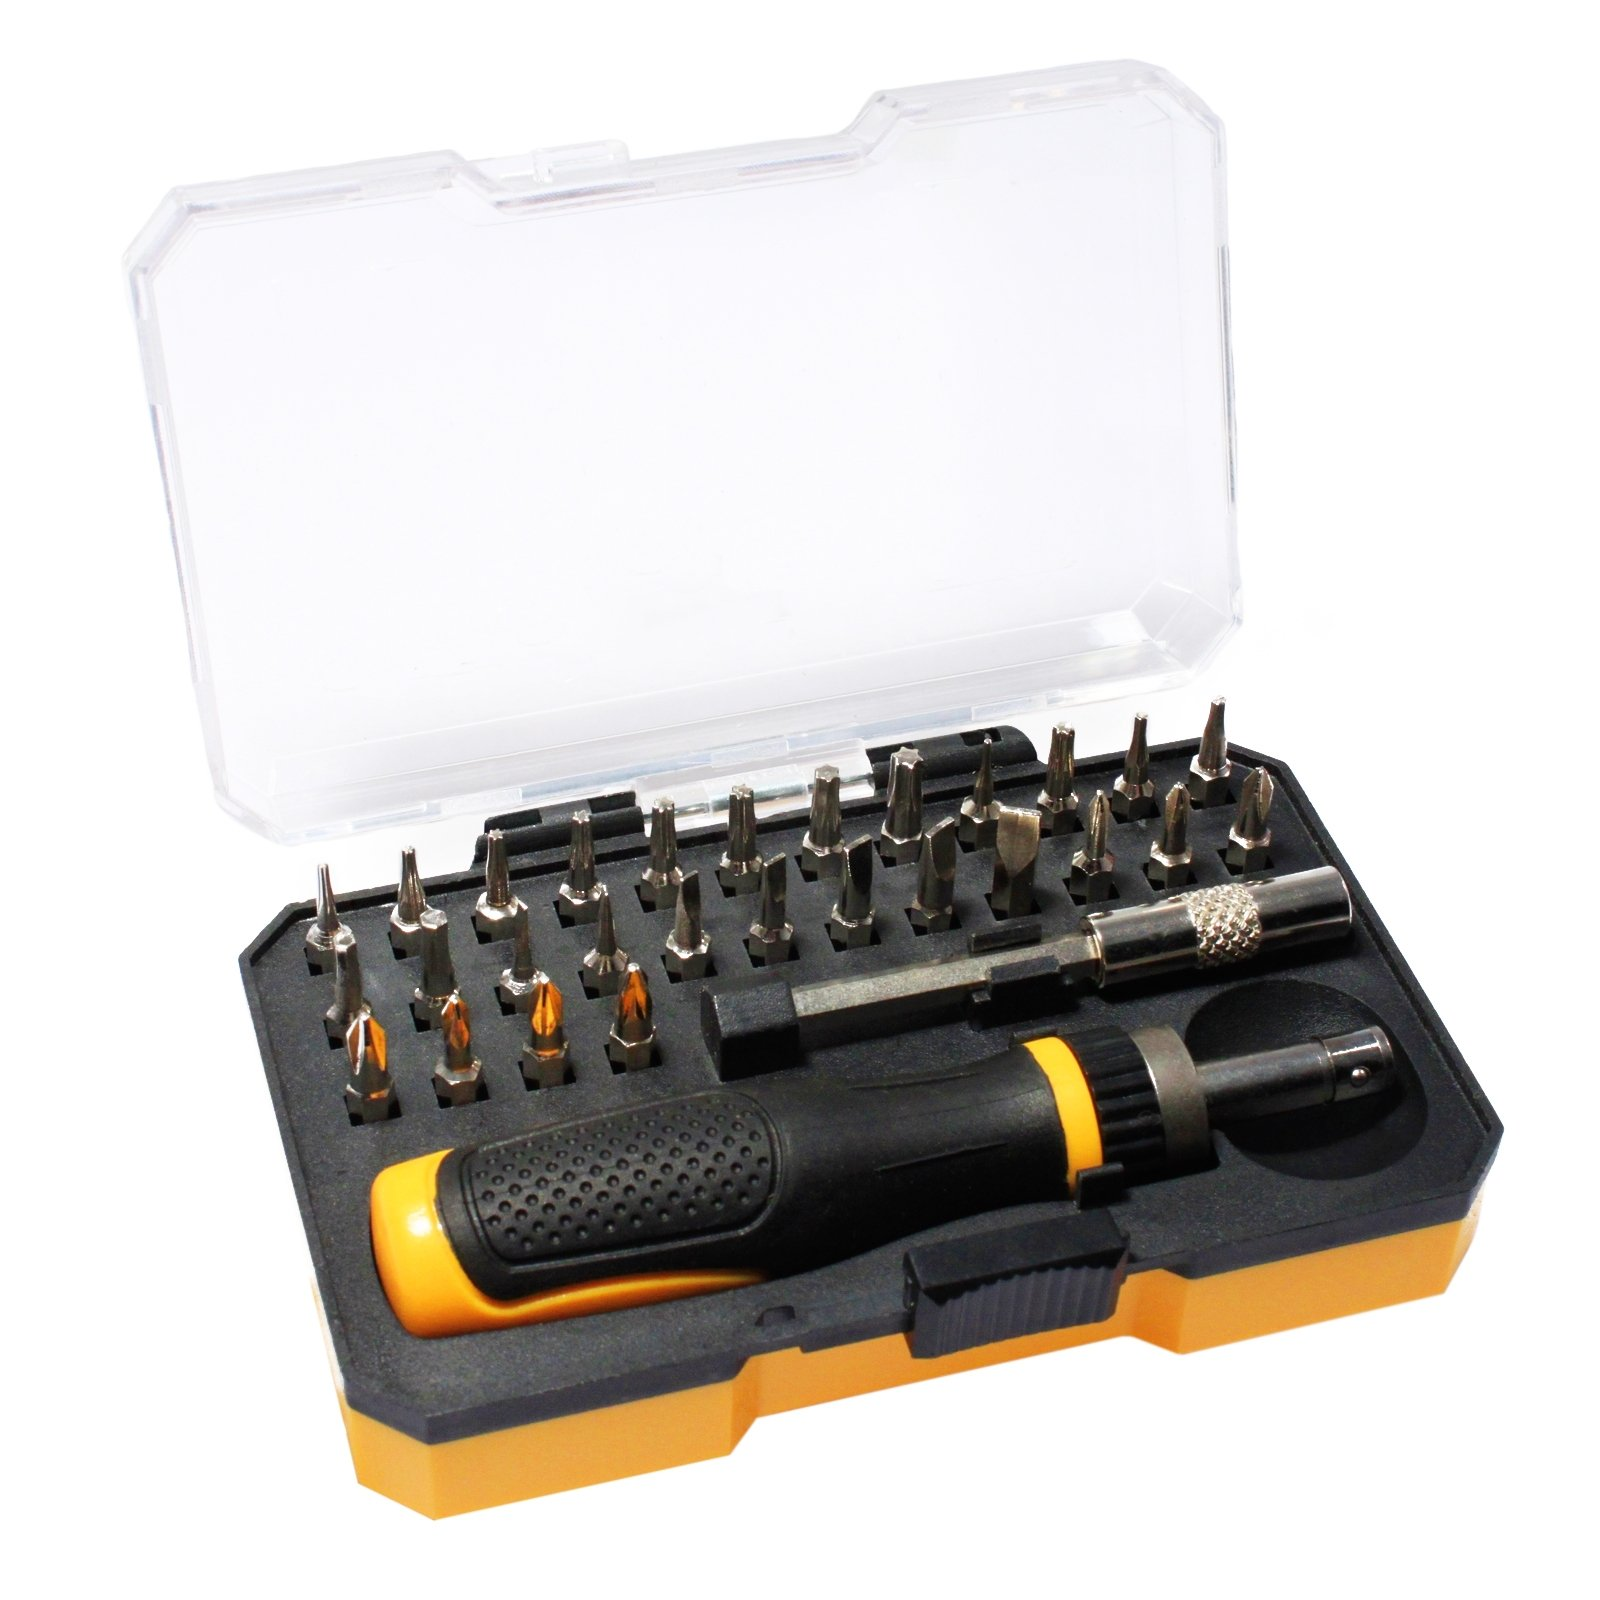 30pc Precision Ratchet Screwdriver Set Assorted Bit Extensions